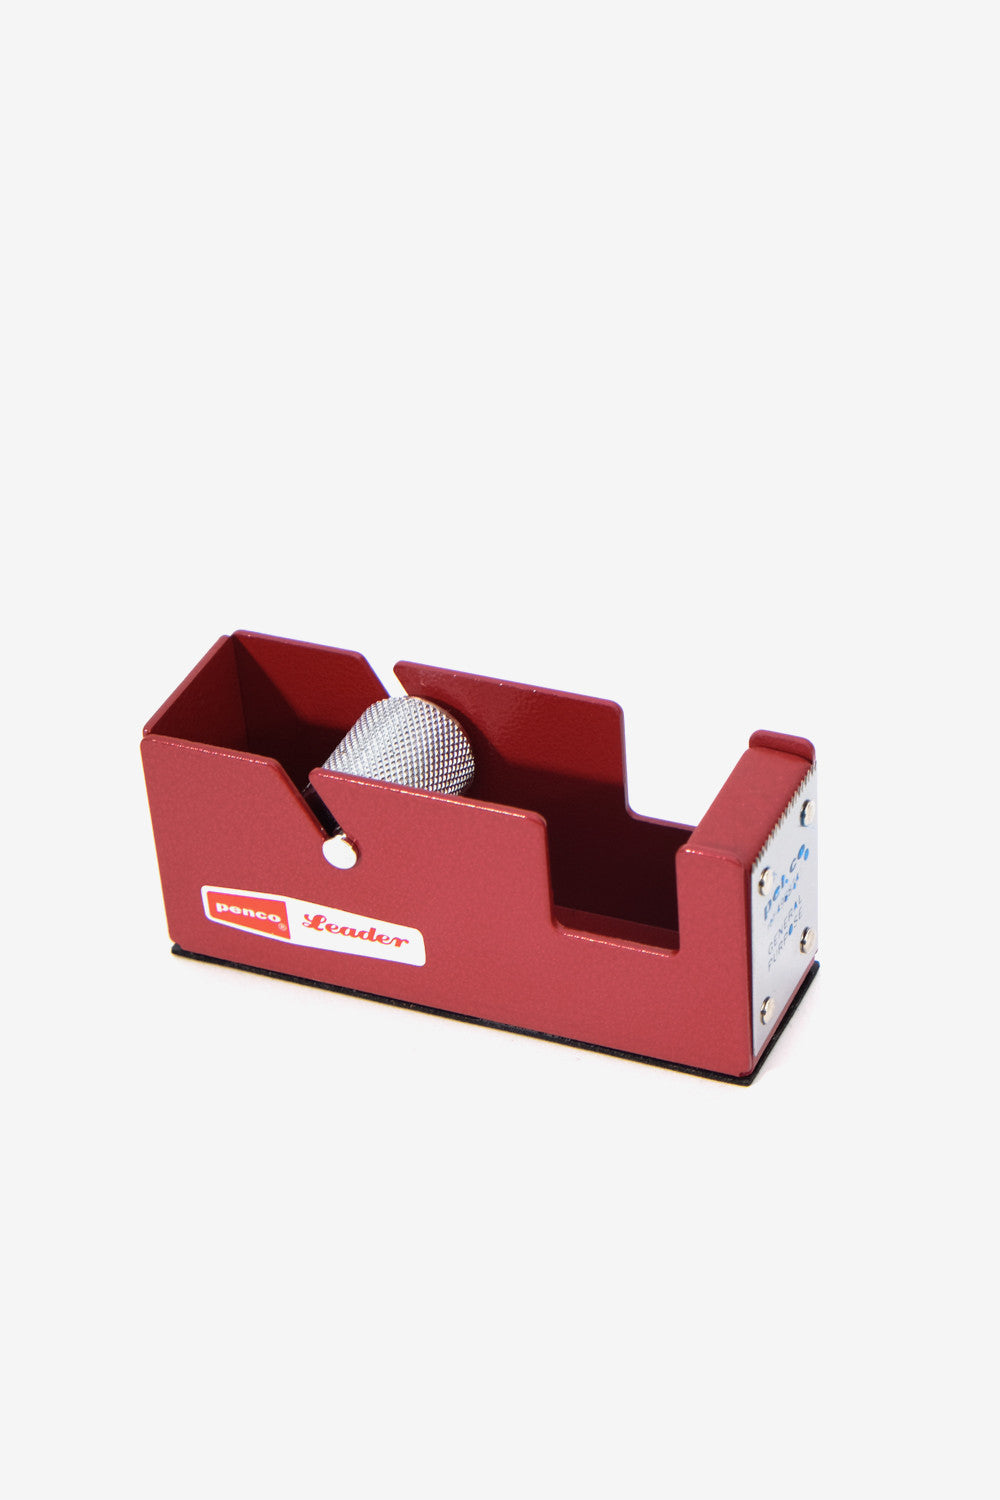 Tape Dispenser S Red, Office, Penco - Six and Sons